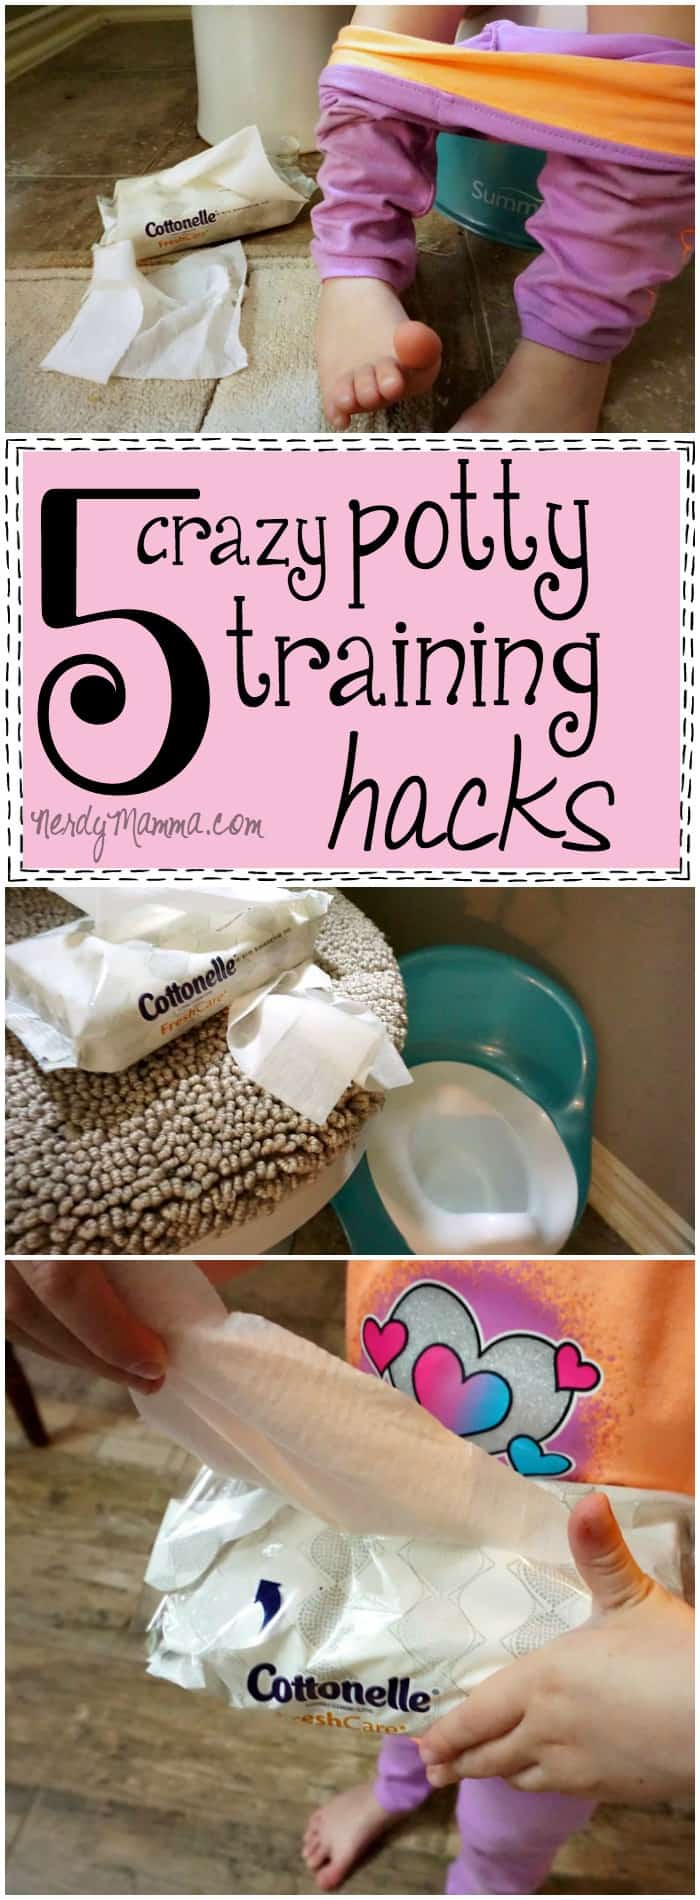 These Potty Training Hacks are just so clever! I love what she does with the kid's backpack. LOL!